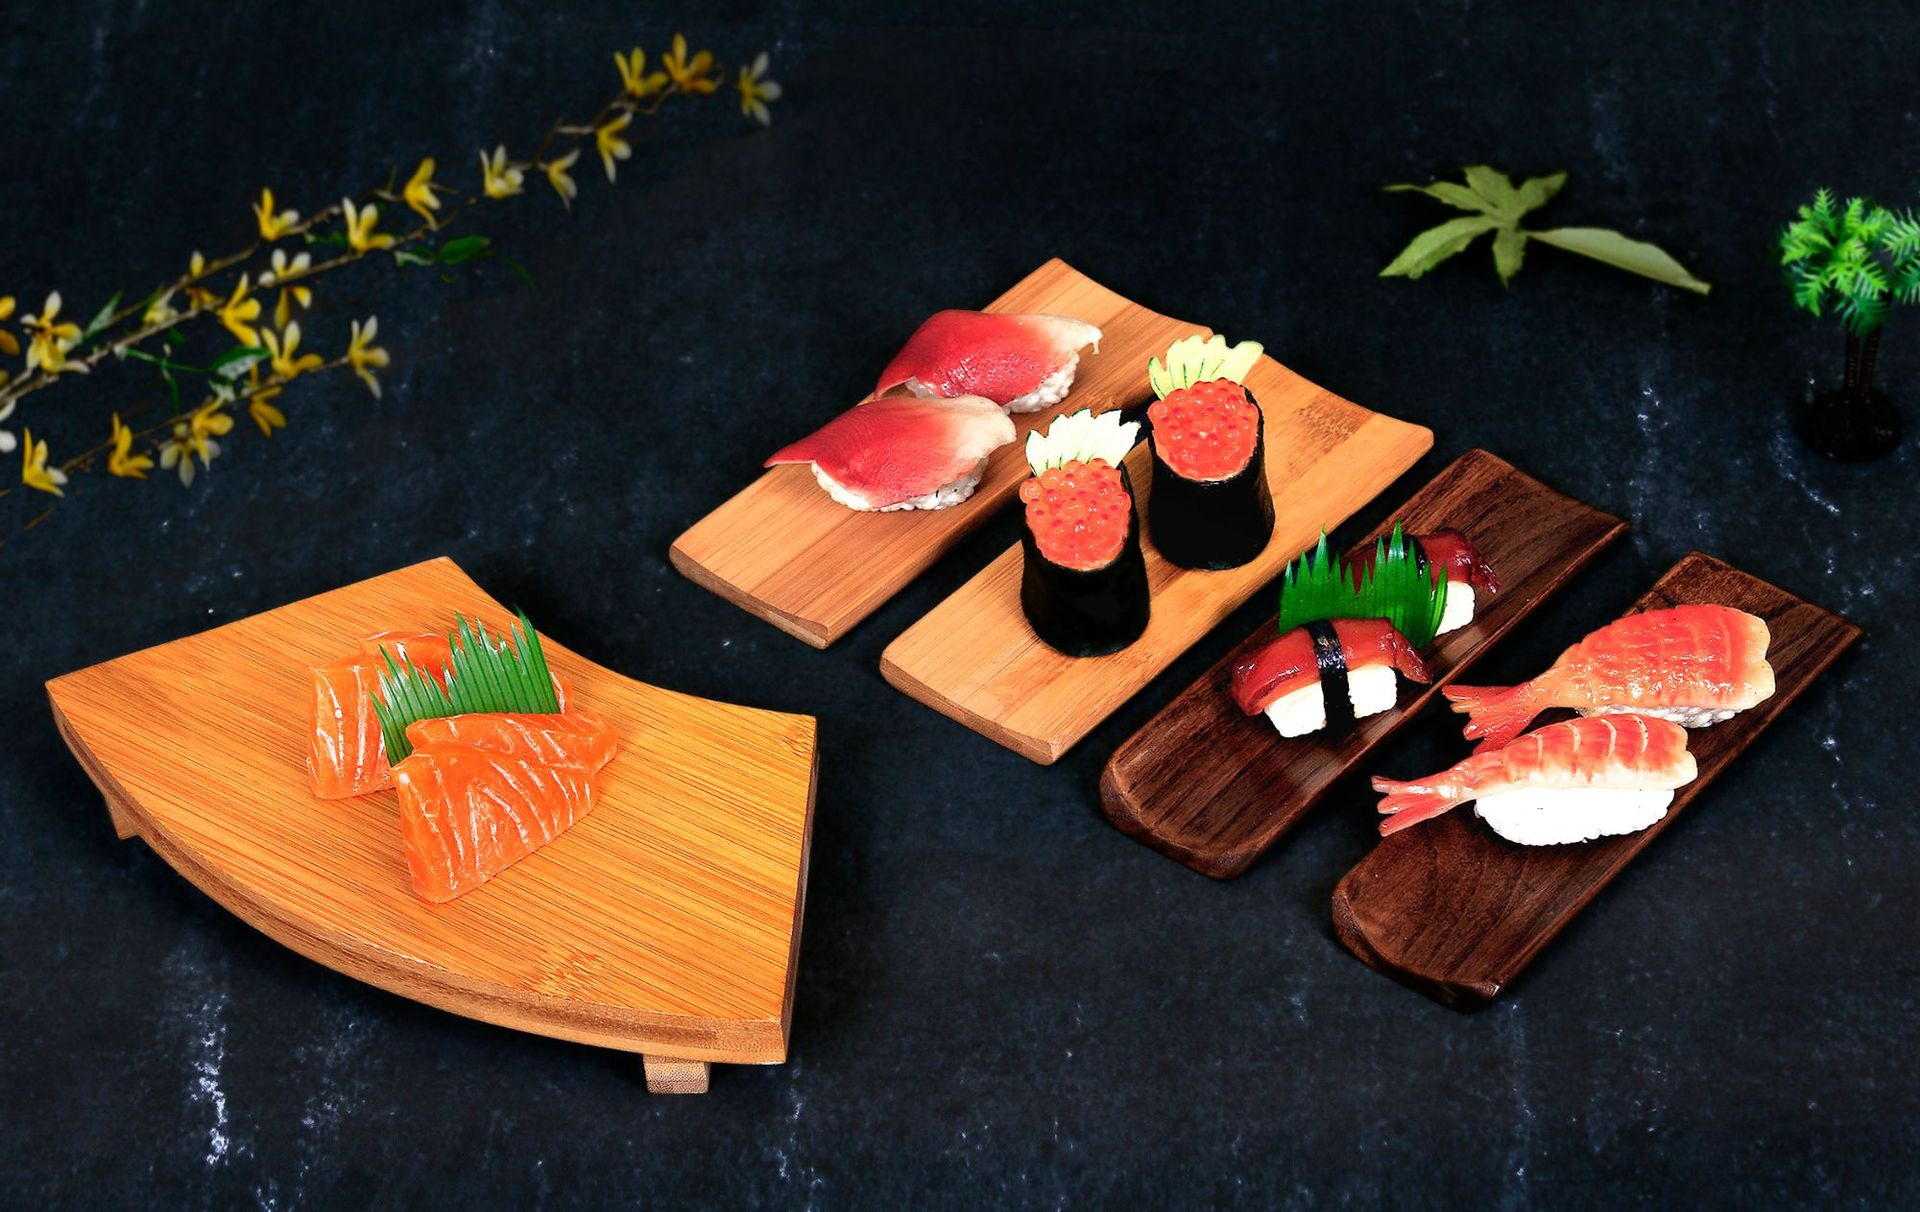 Sushi Board Bamboo Sushi Tray Japanese and Korean Cooking Stool Wooden Sushi Table Wooden Bench Japanese Tableware Sushi Table